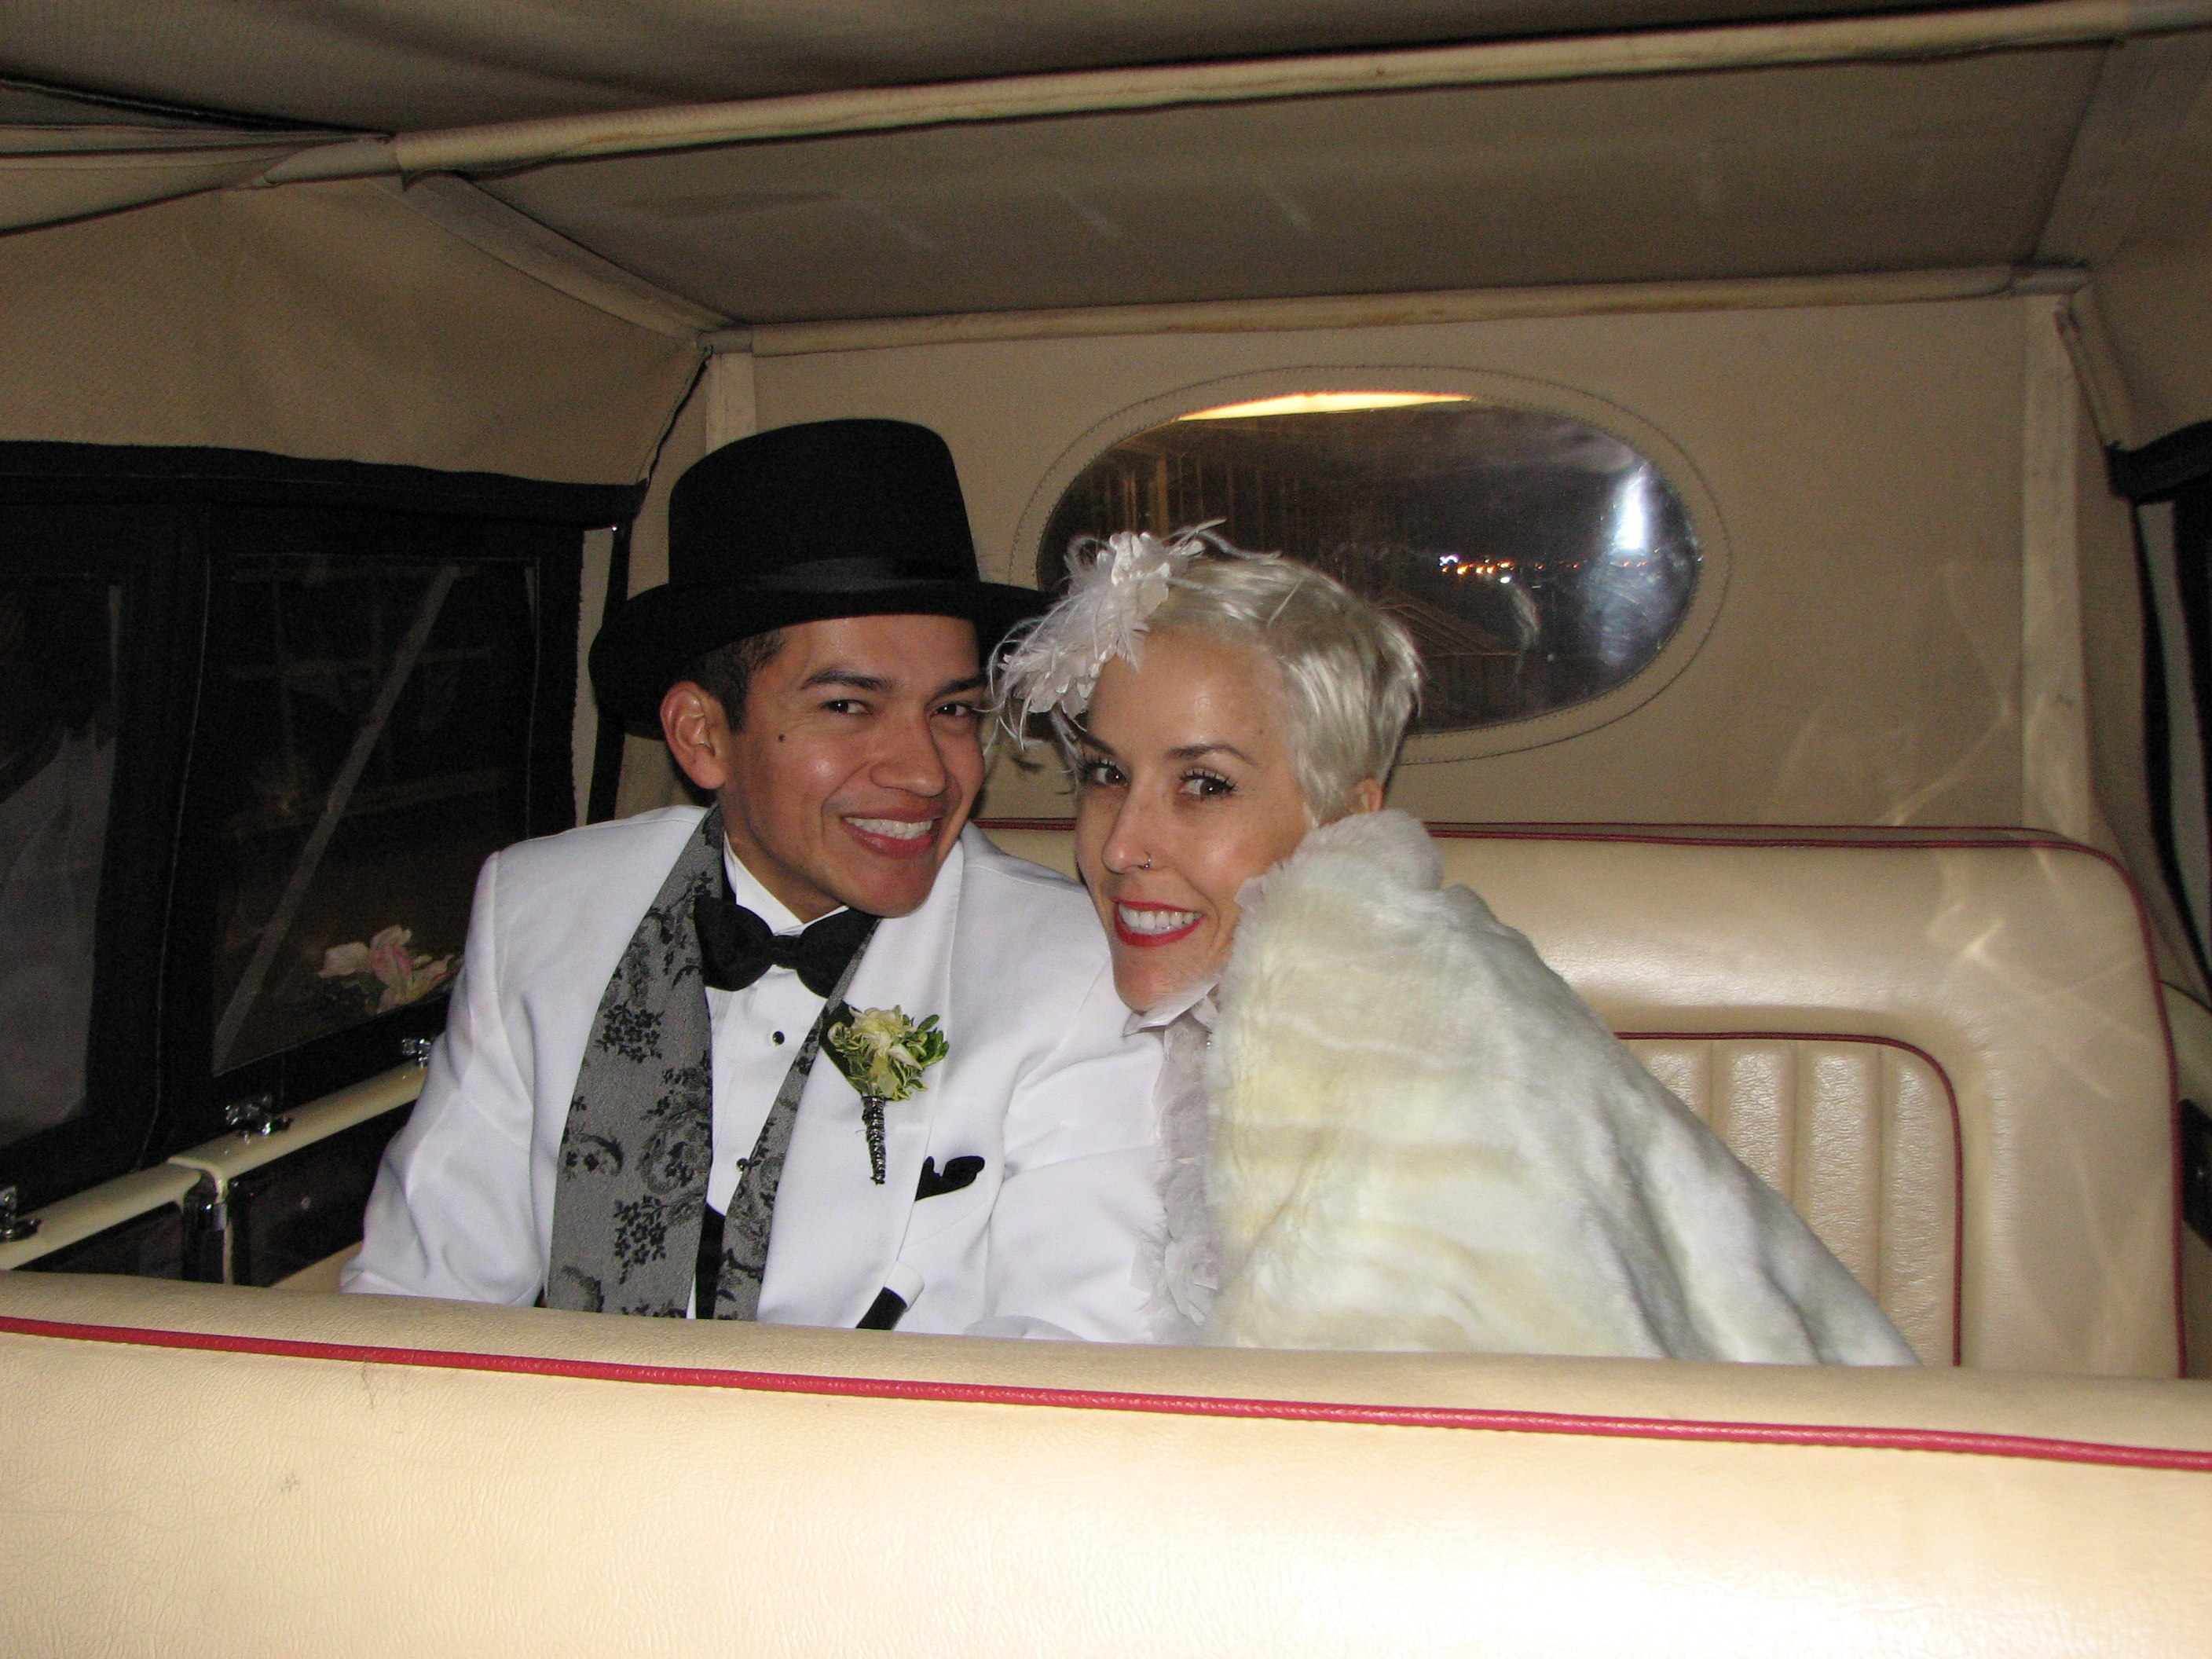 Late night vintage wedding transportation packages